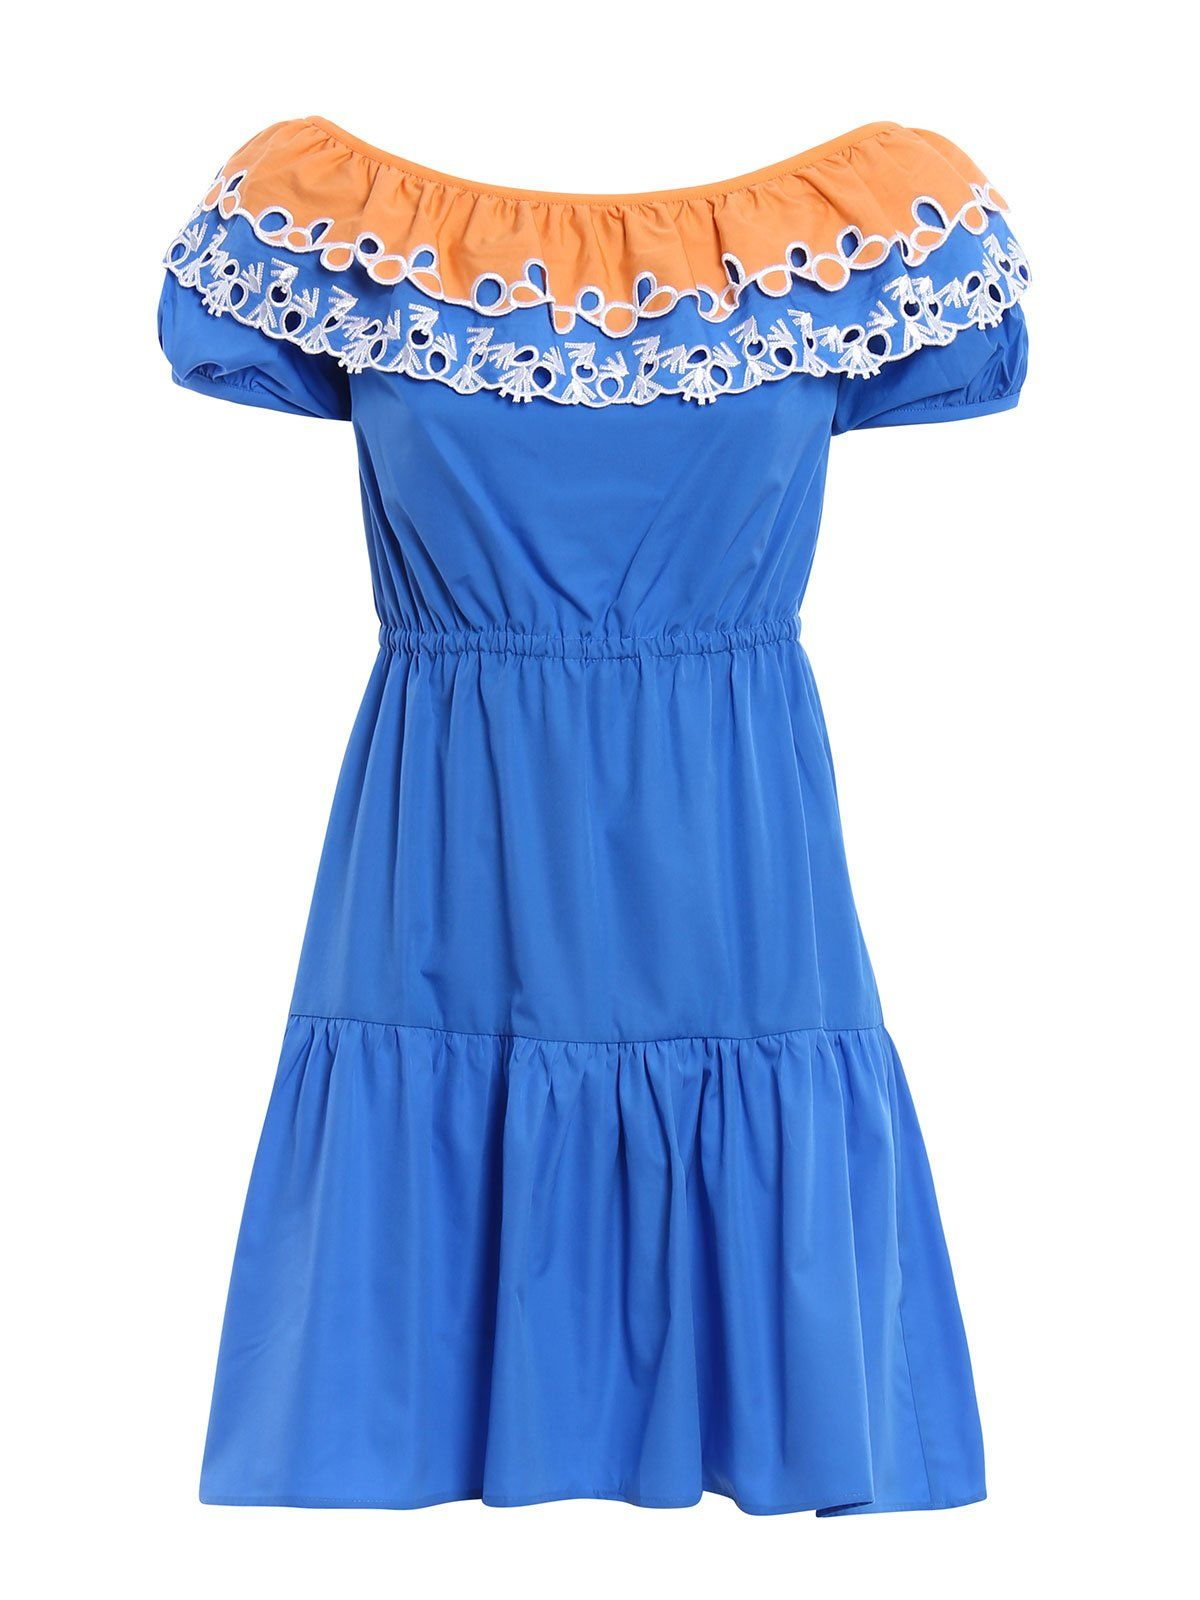 Peter Pilotto Embroidered Dress